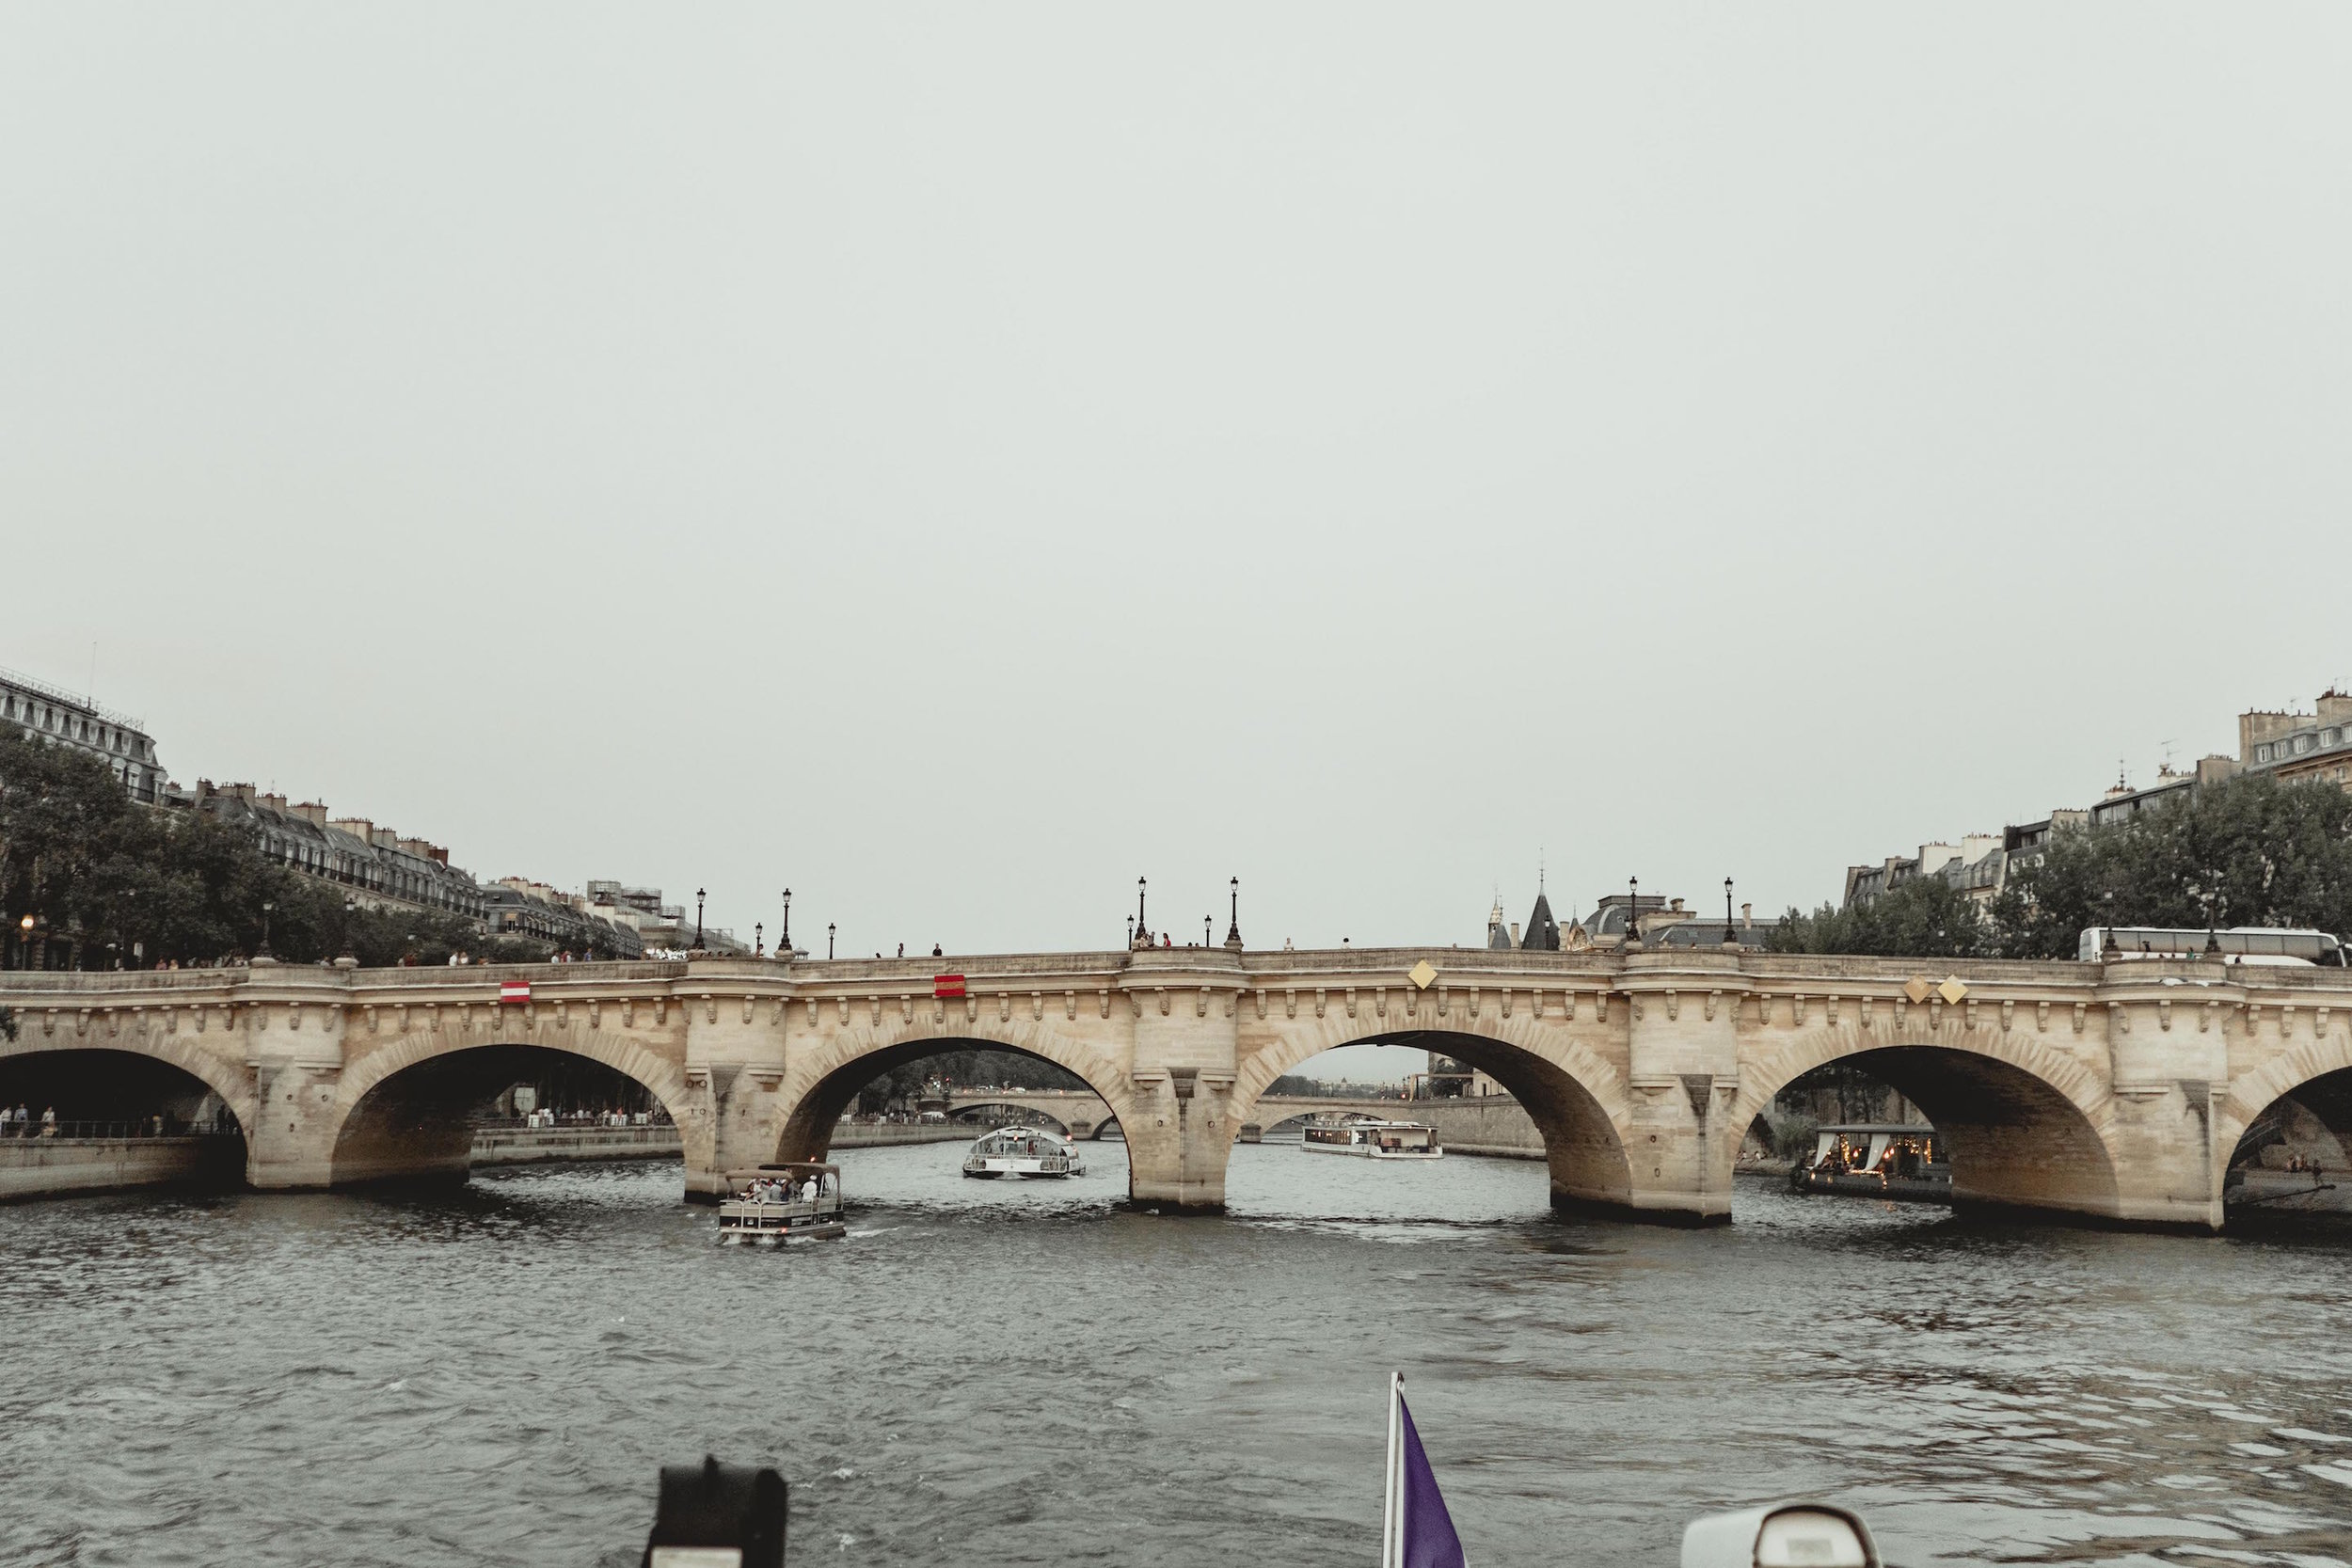 A boat tour down the Seine, to cap off the last day of our trip. It was a sweet finale.